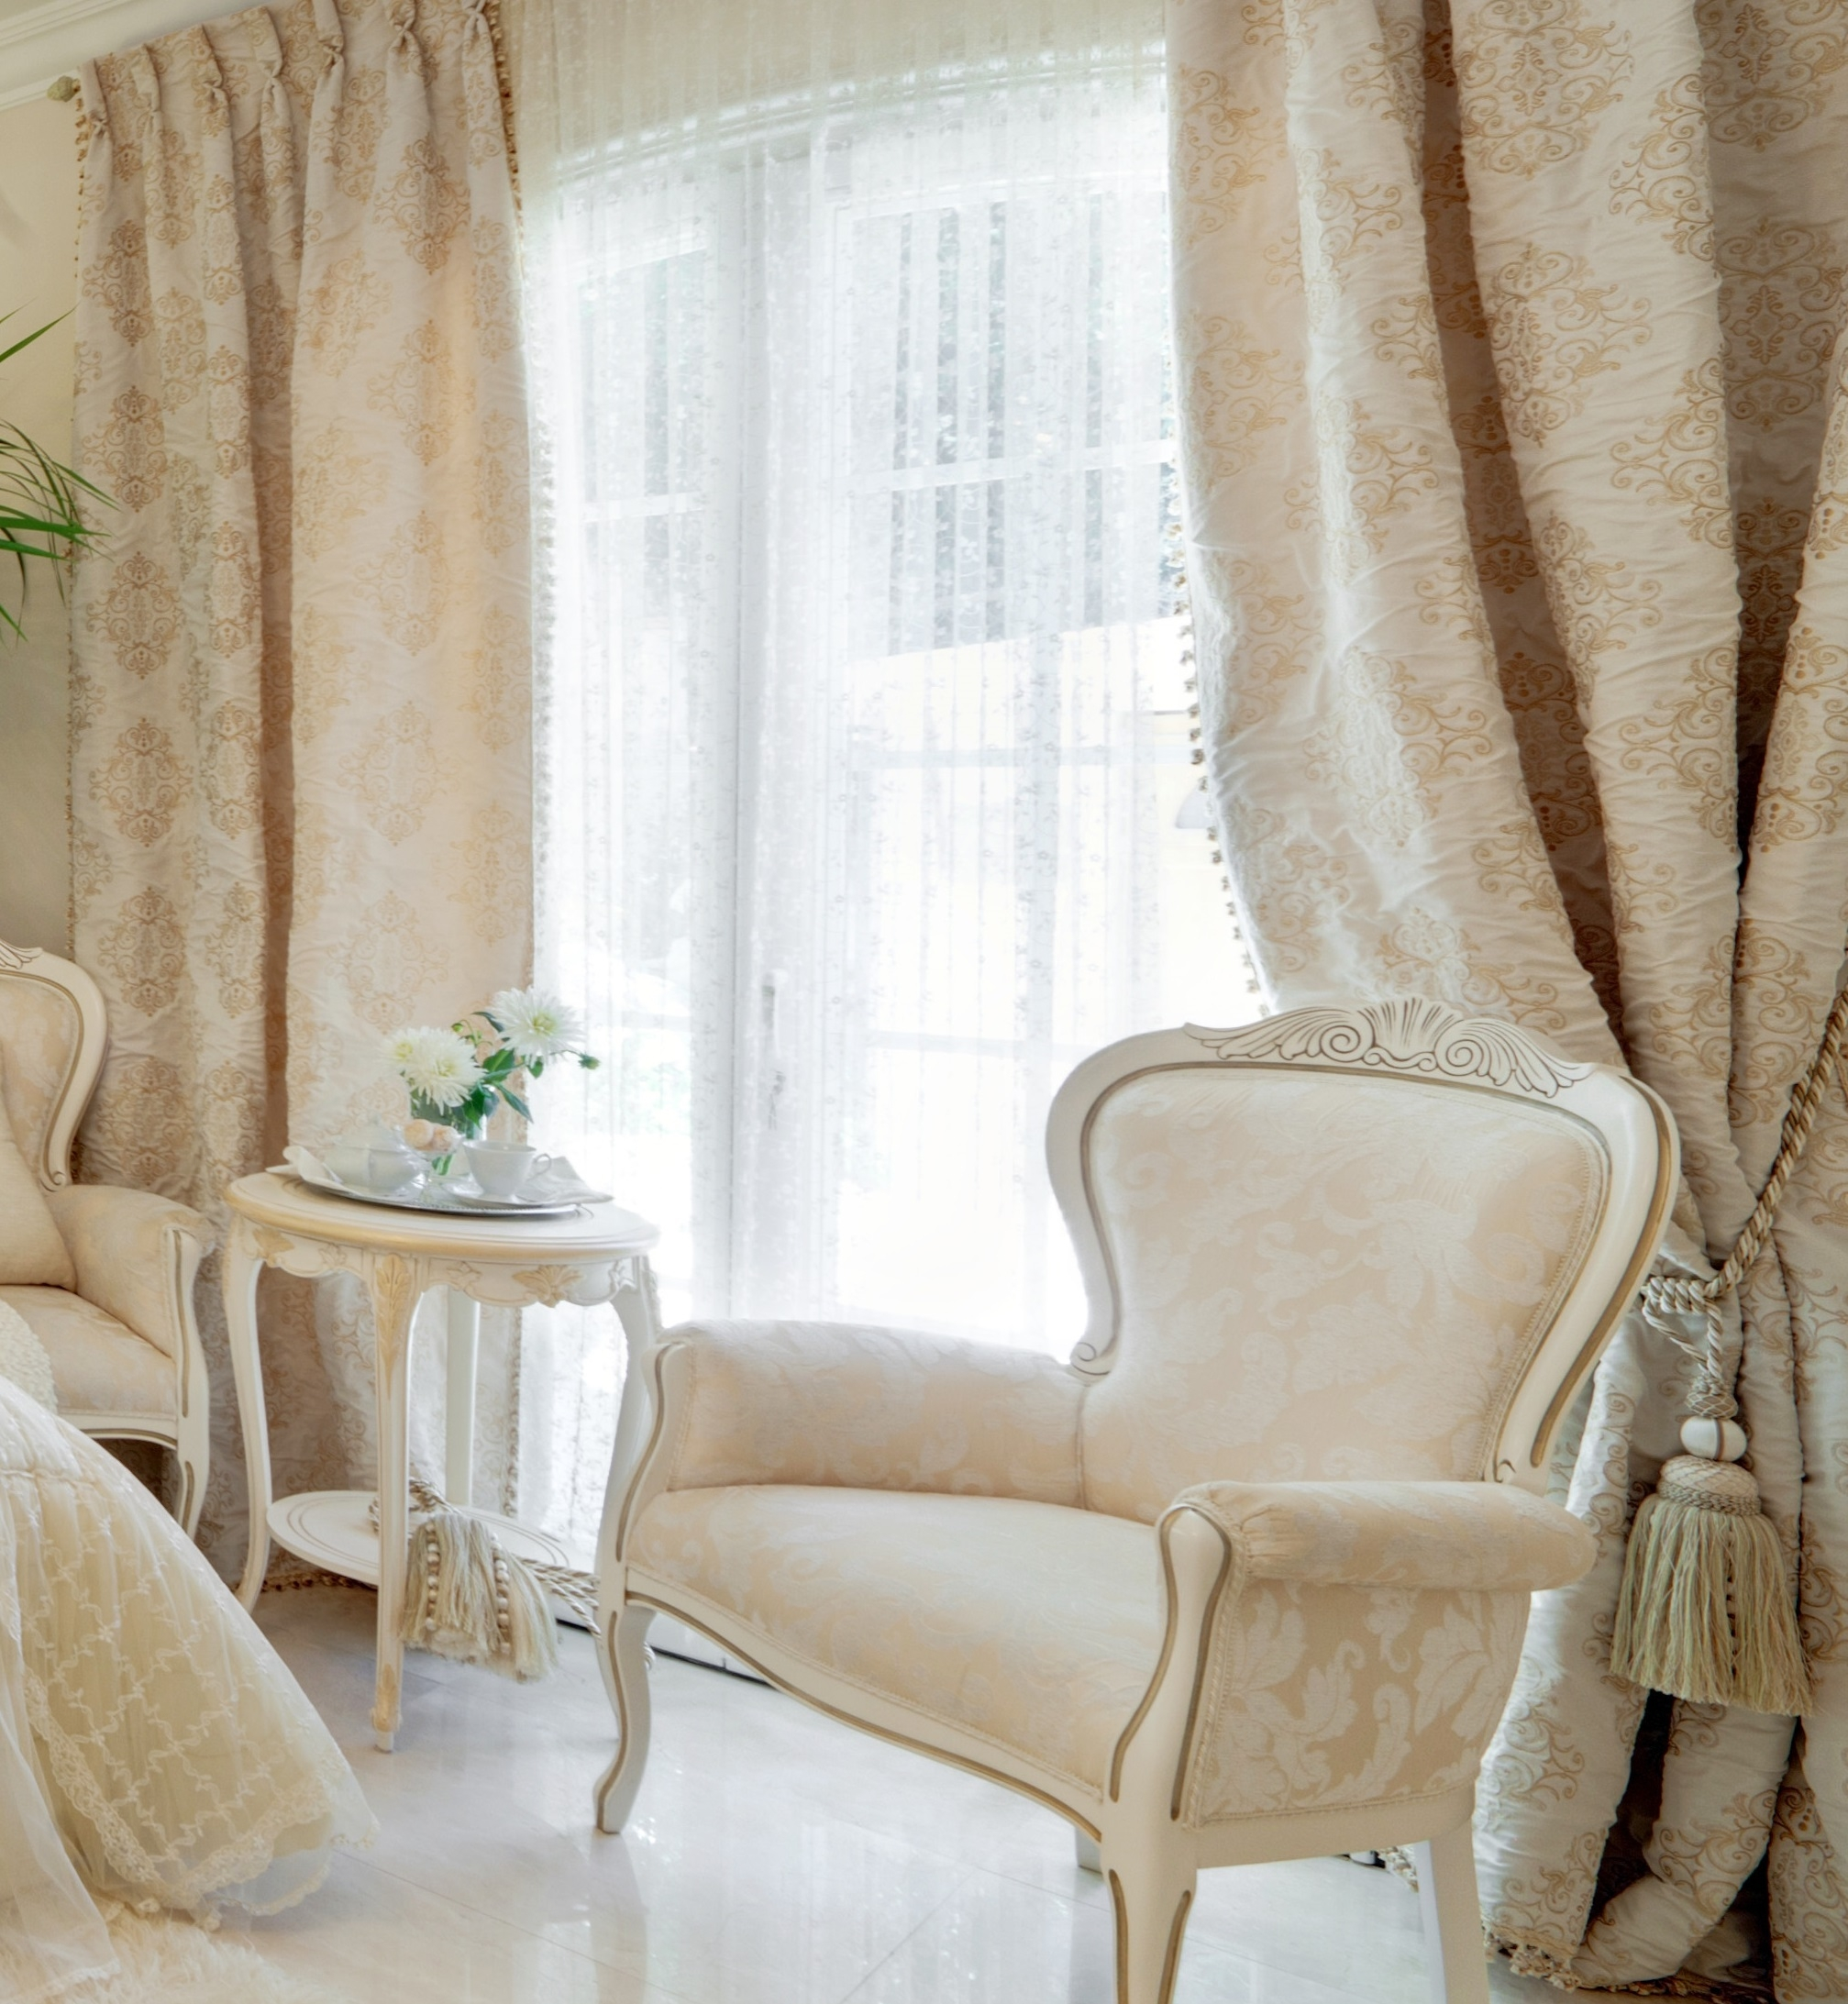 Luxury Interior Design Lidia Bersani Home Fashion Regarding Luxury Curtains (Image 13 of 15)